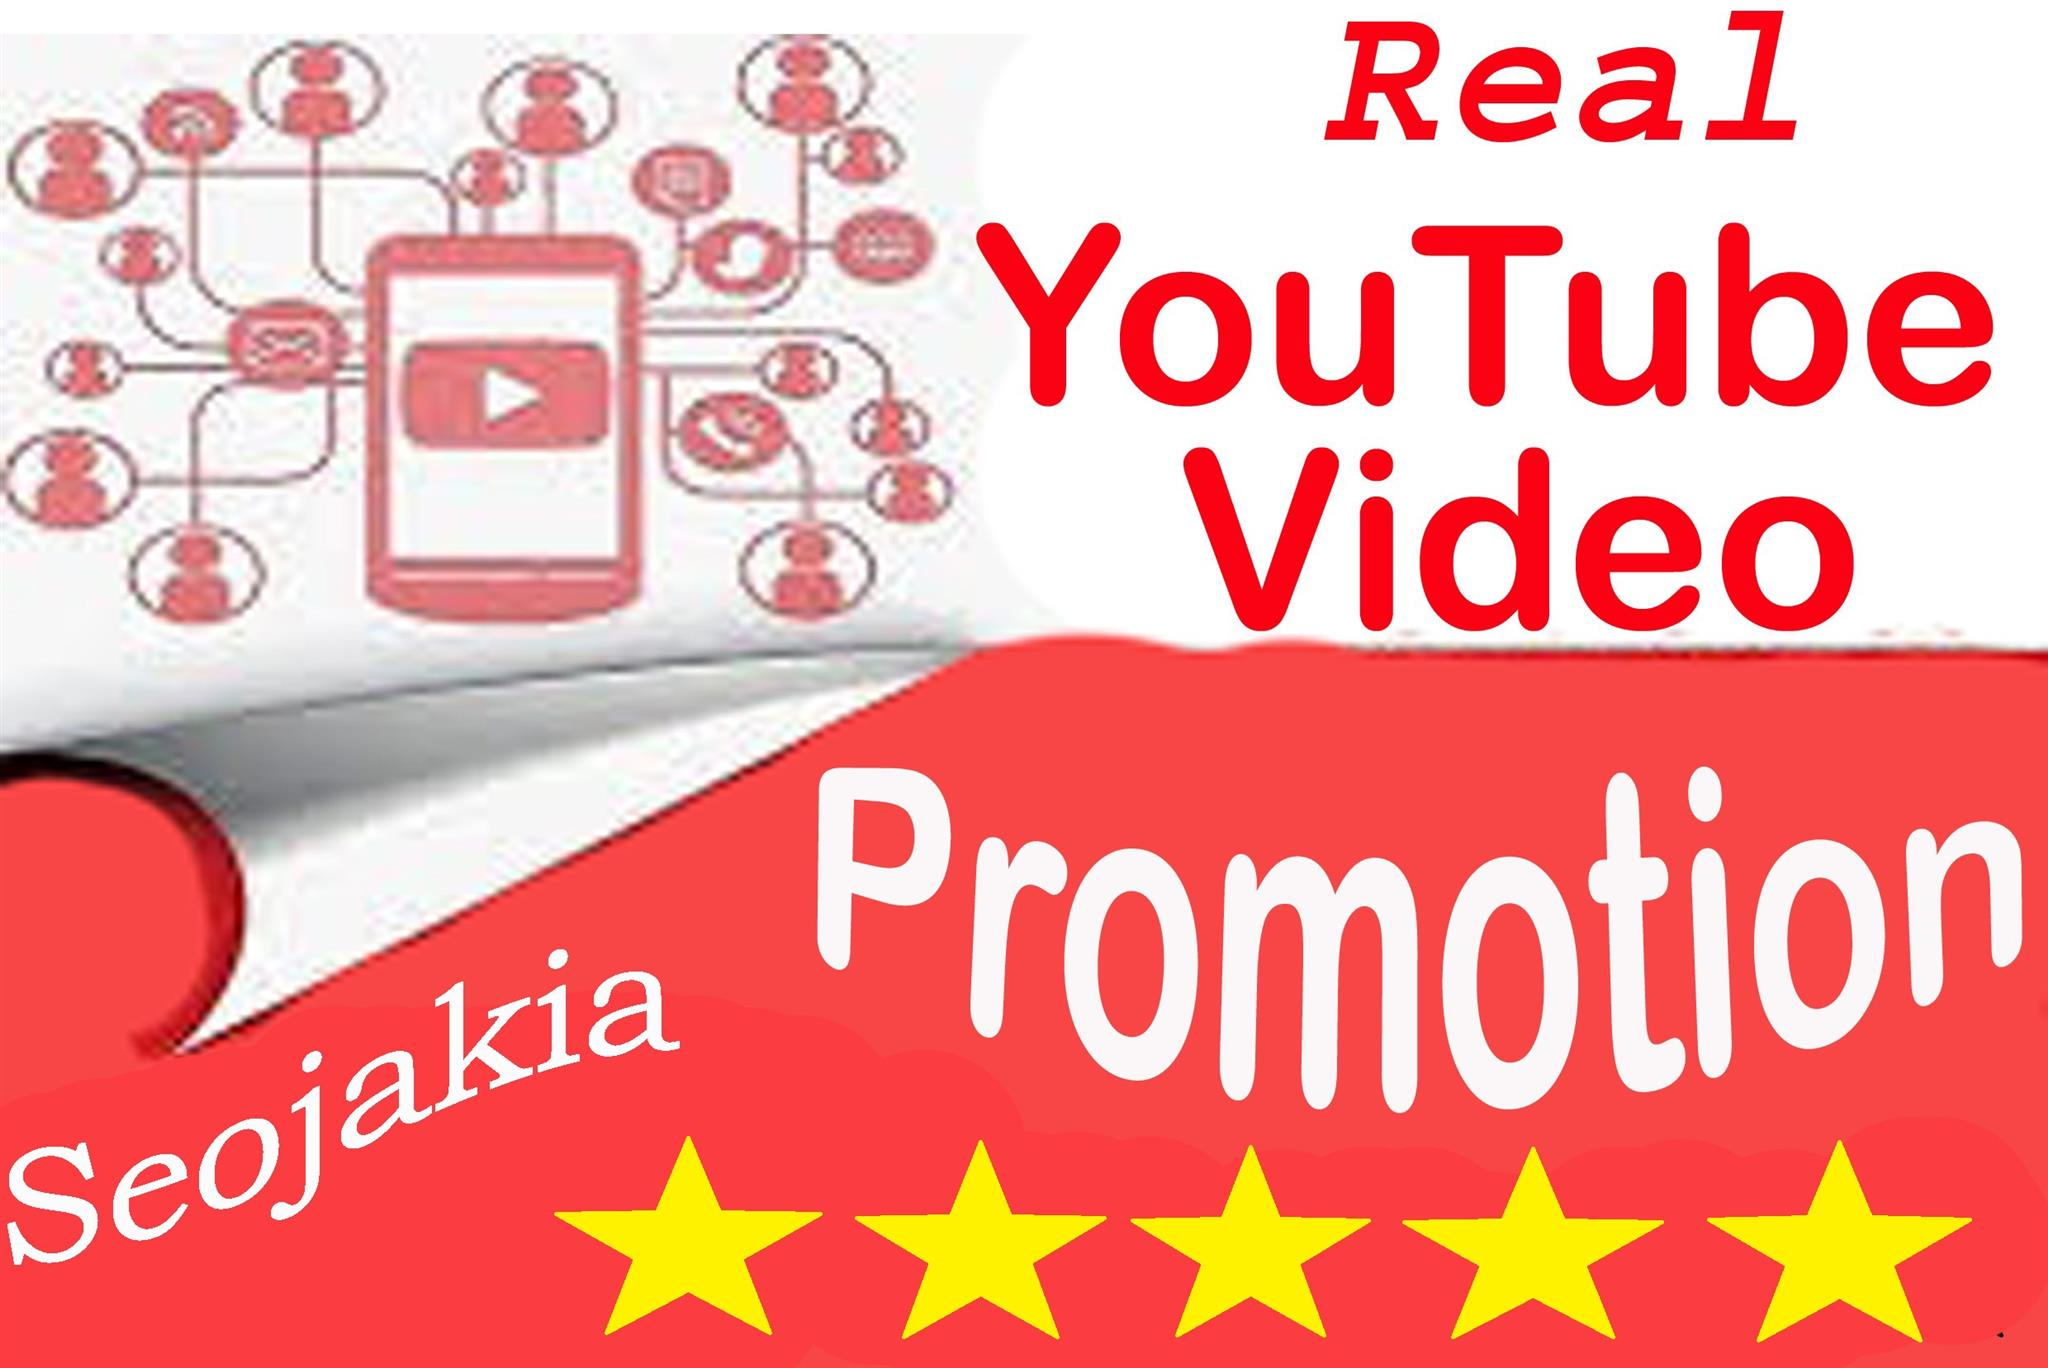 Youtube-Marketing-Safe-Video-Promotion-Real-Via-User